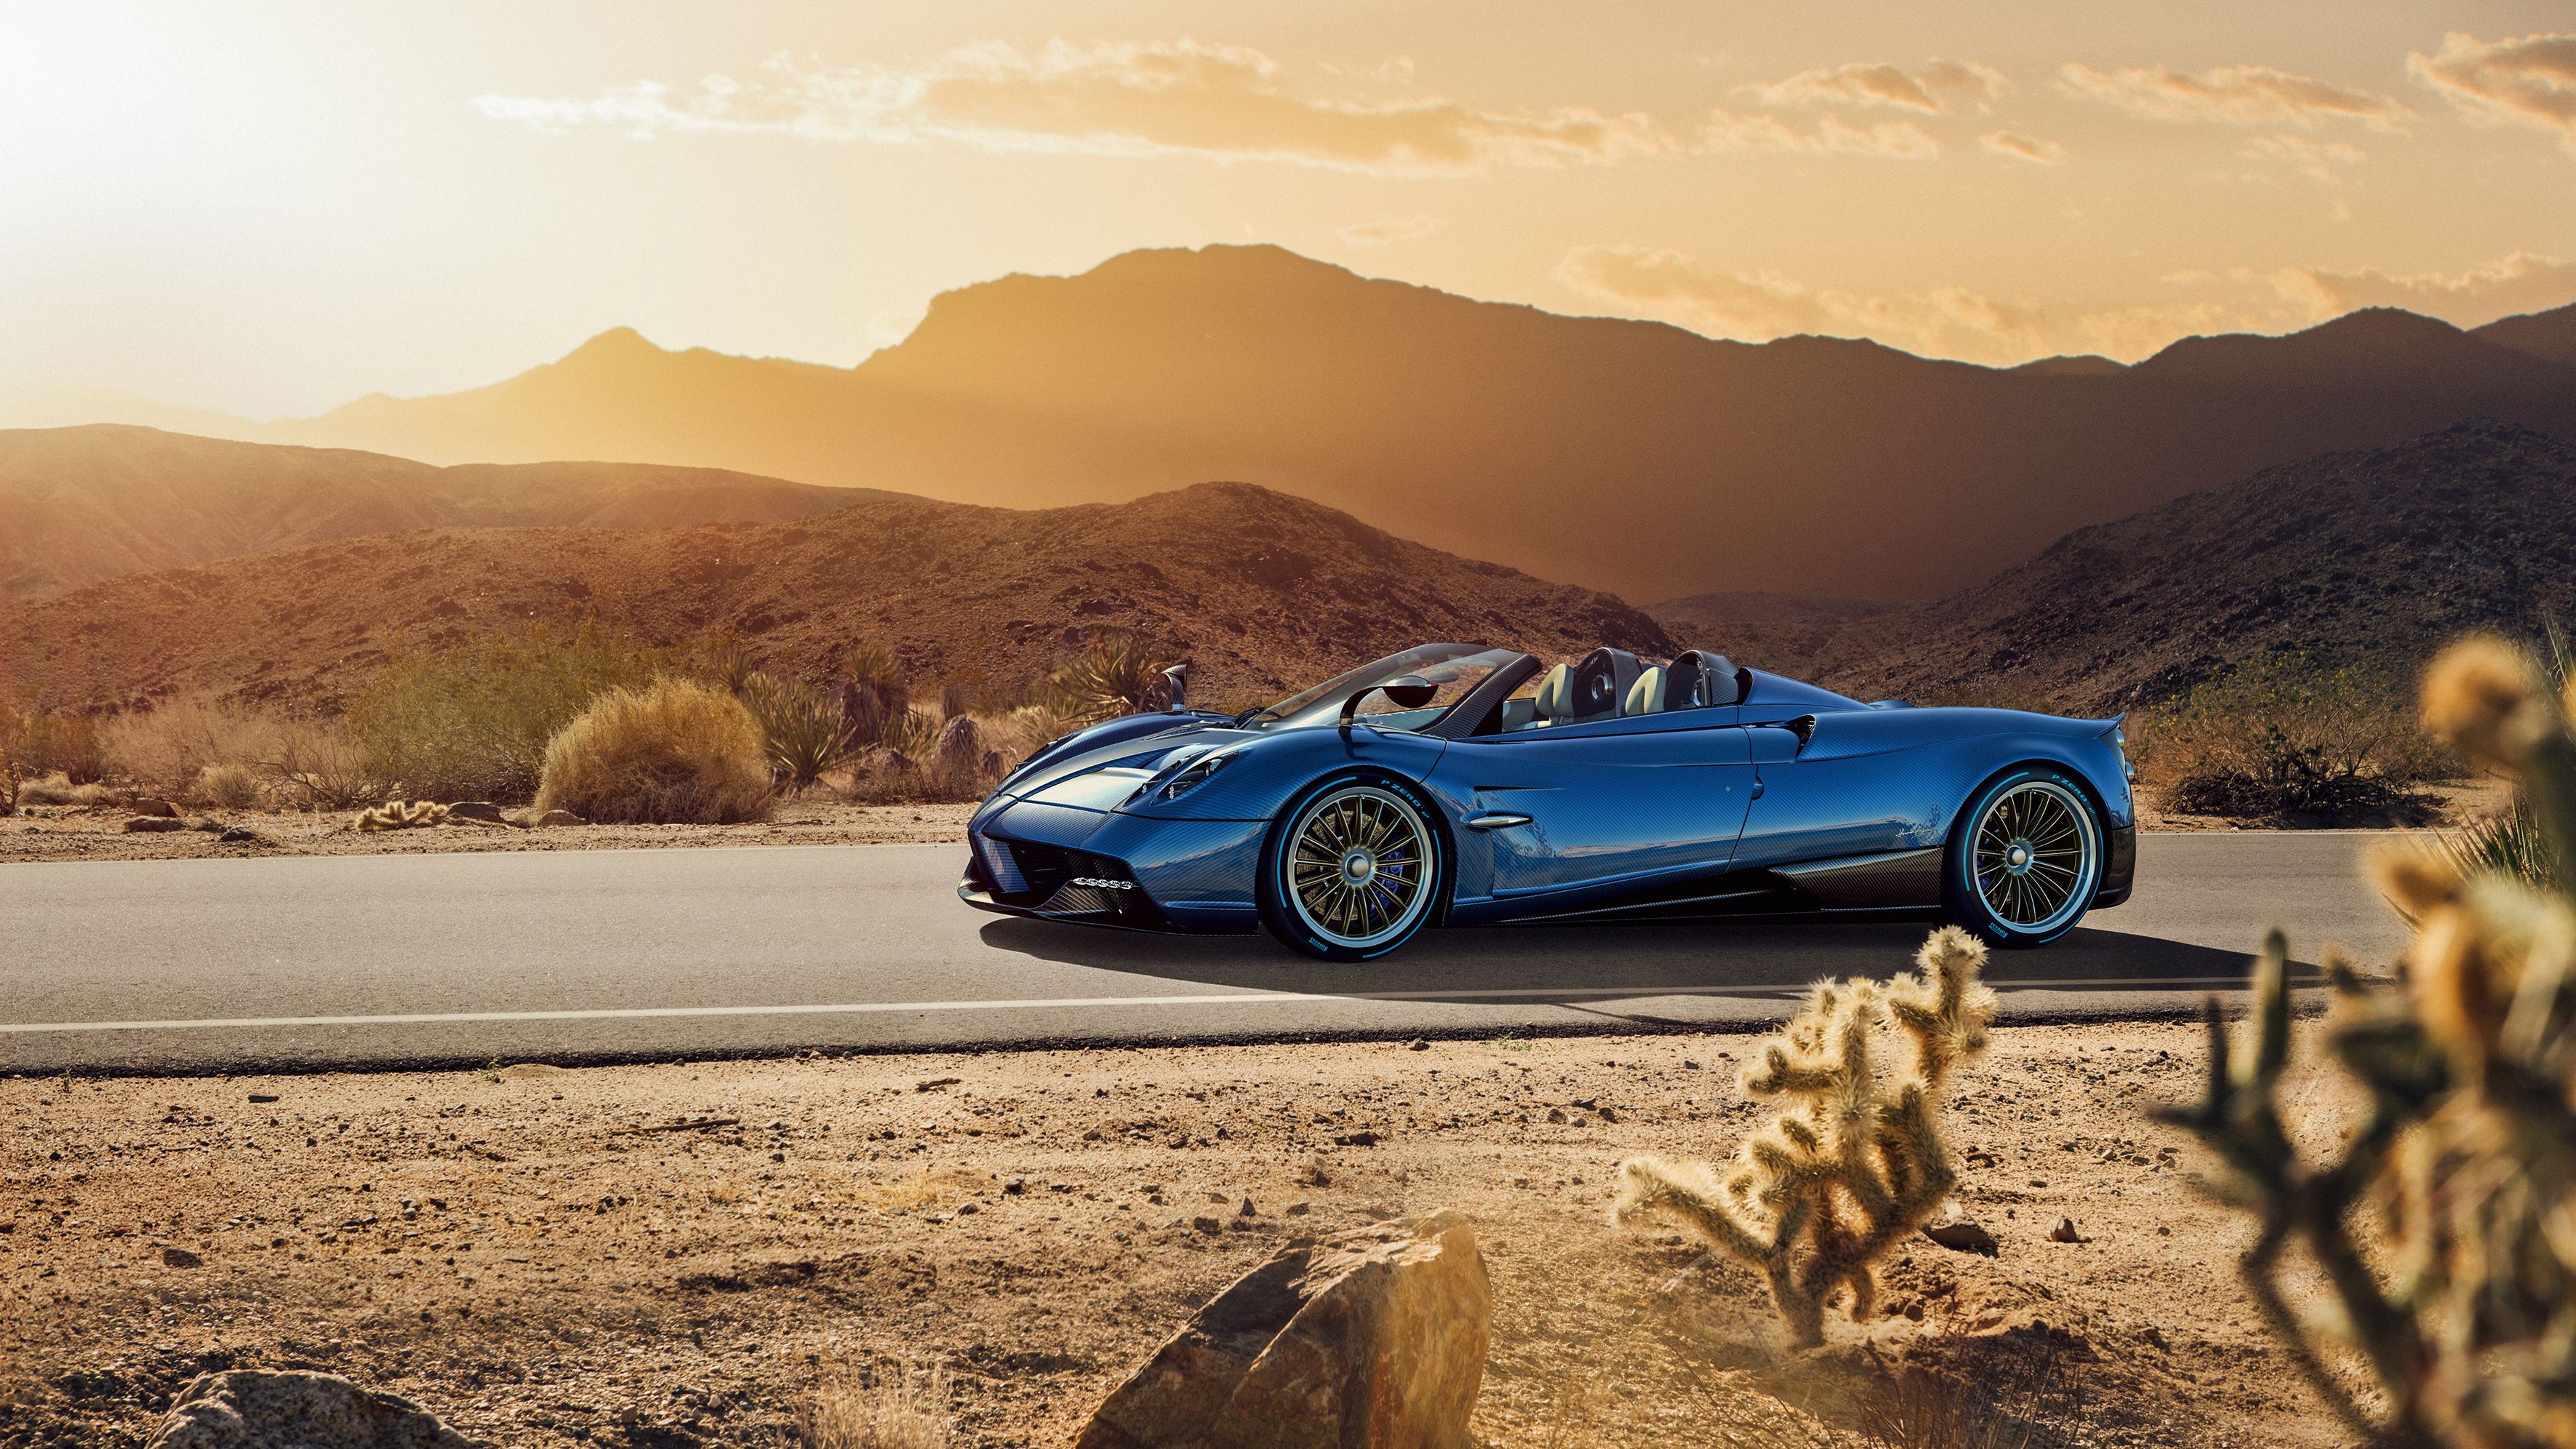 Pagani car wallpaperspictures pagani widescreen hd desktop pagani car wallpaperspictures pagani widescreen hd desktop backgrounds page 1 biocorpaavc Images